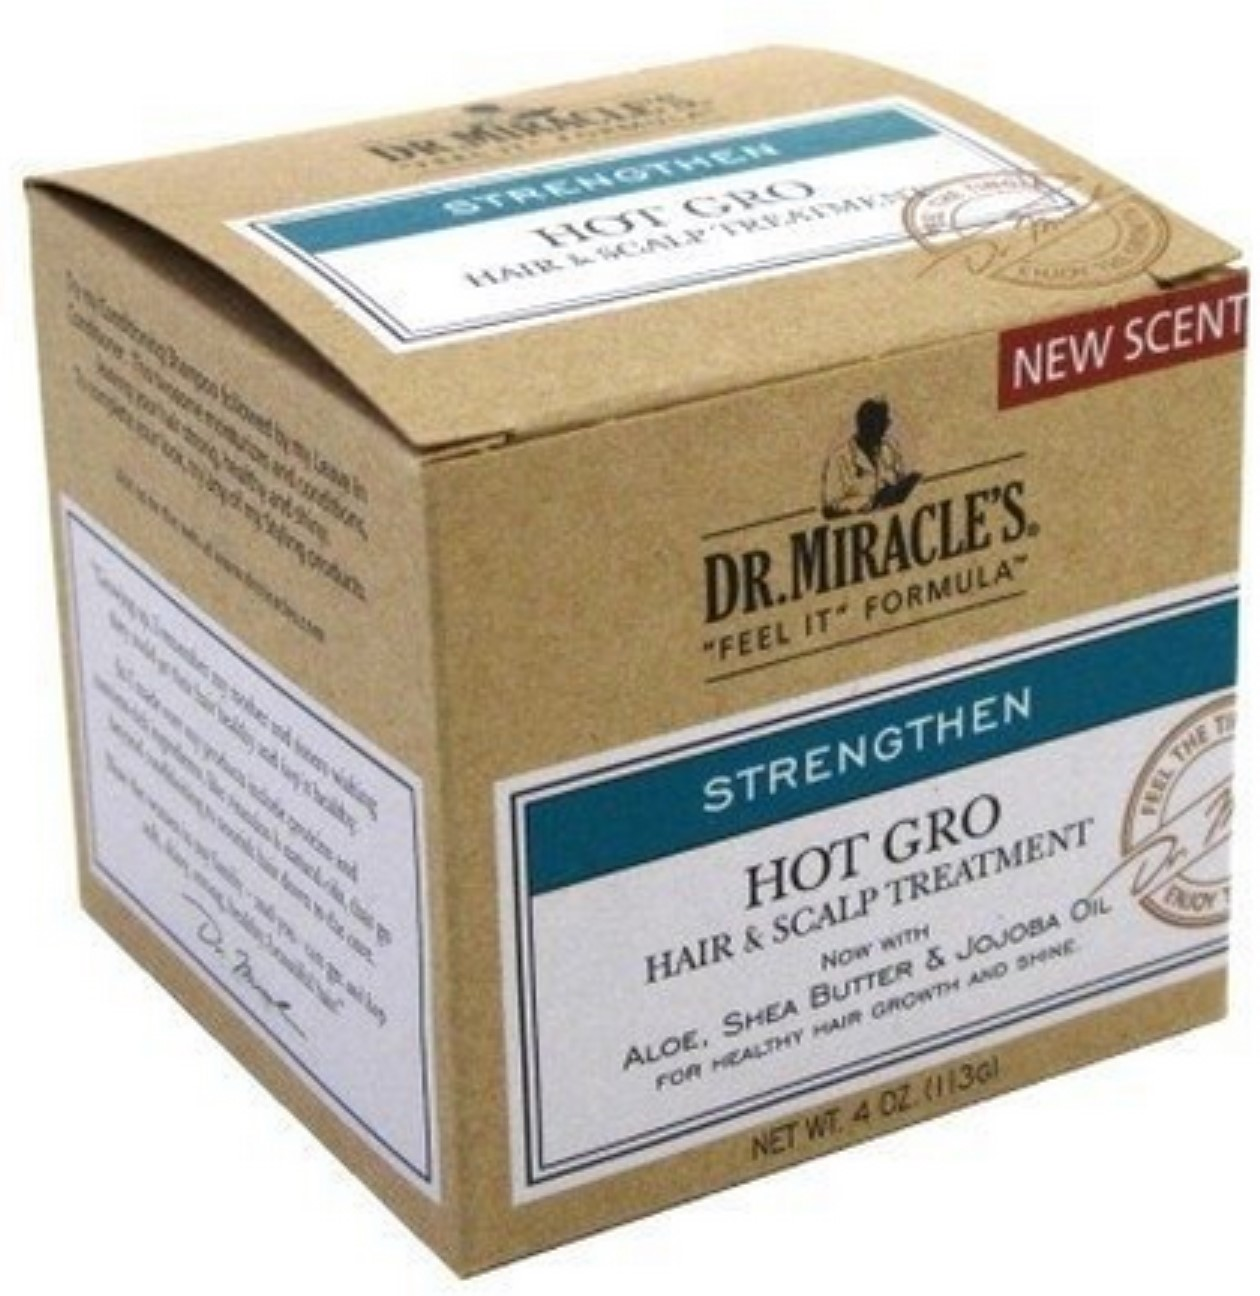 Dr. Miracle's Strengthen Hot Hair & Scalp Treatment, 4 oz (Pack of 2)